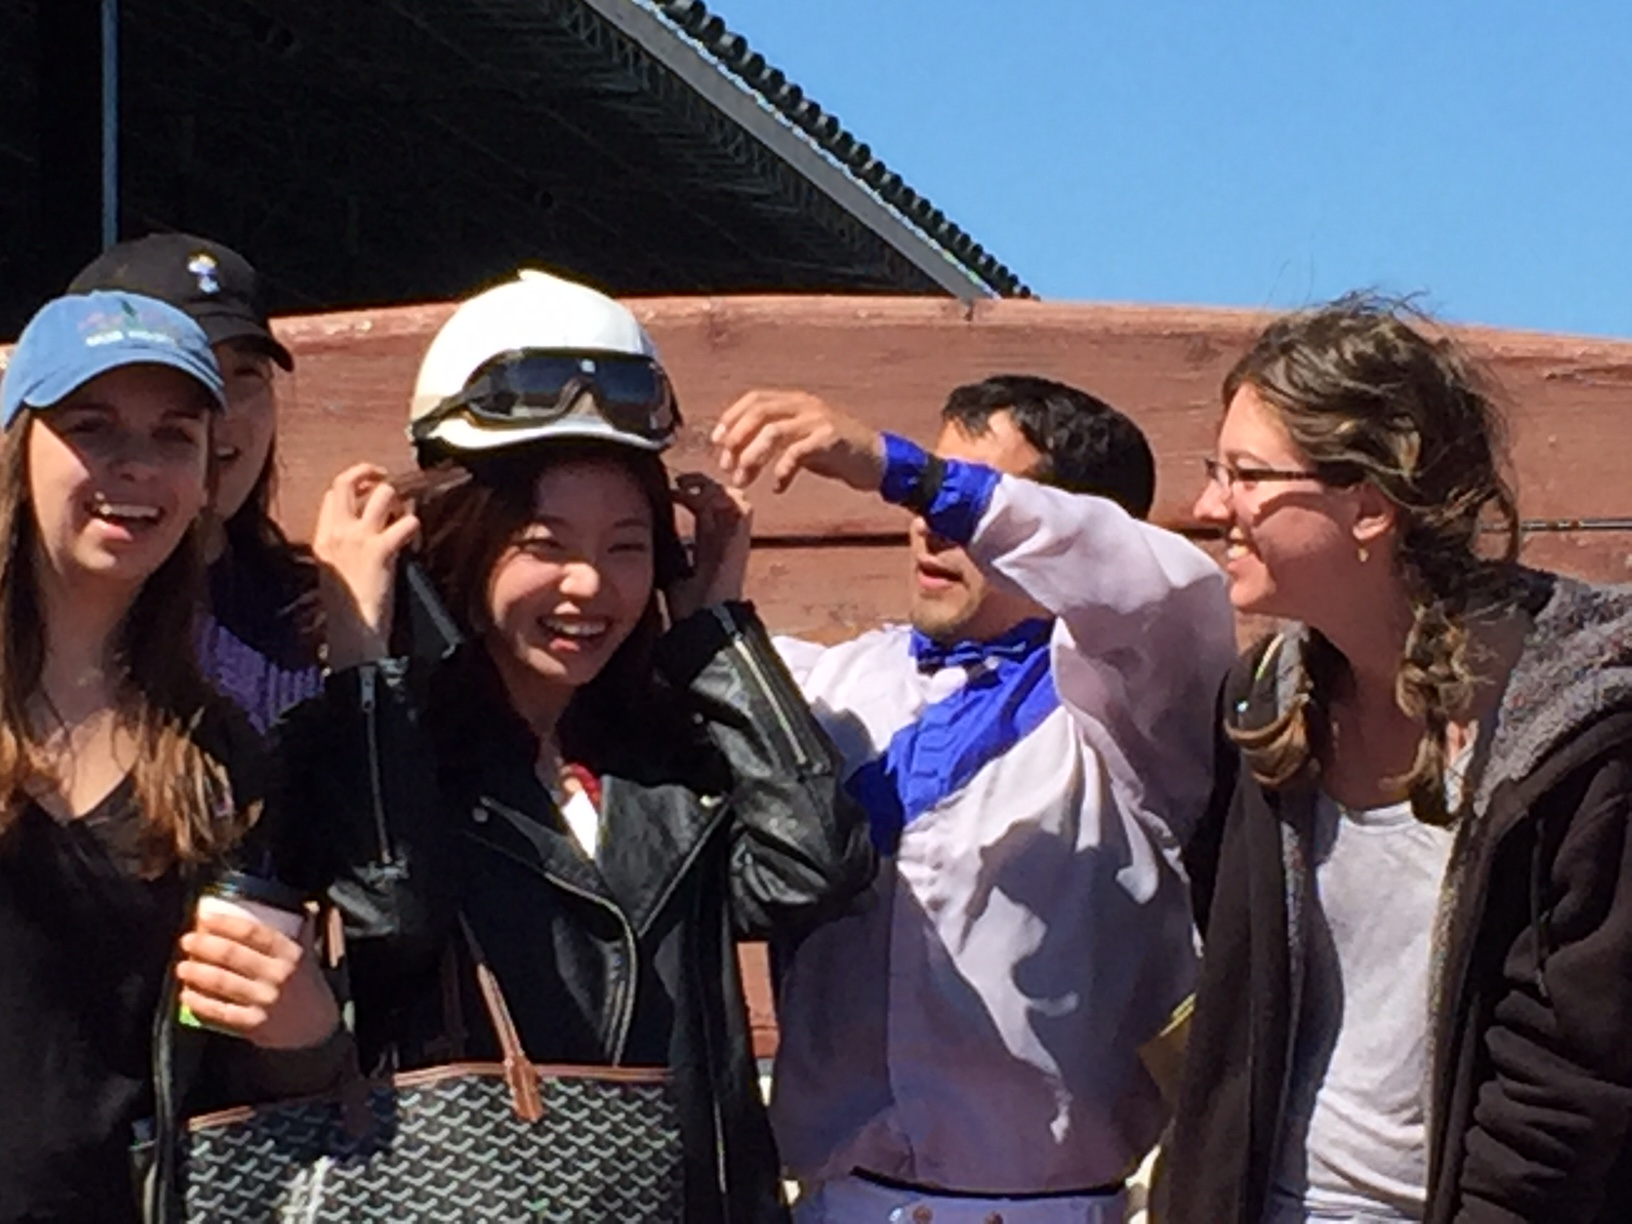 Sue making friends with a horse jockey!